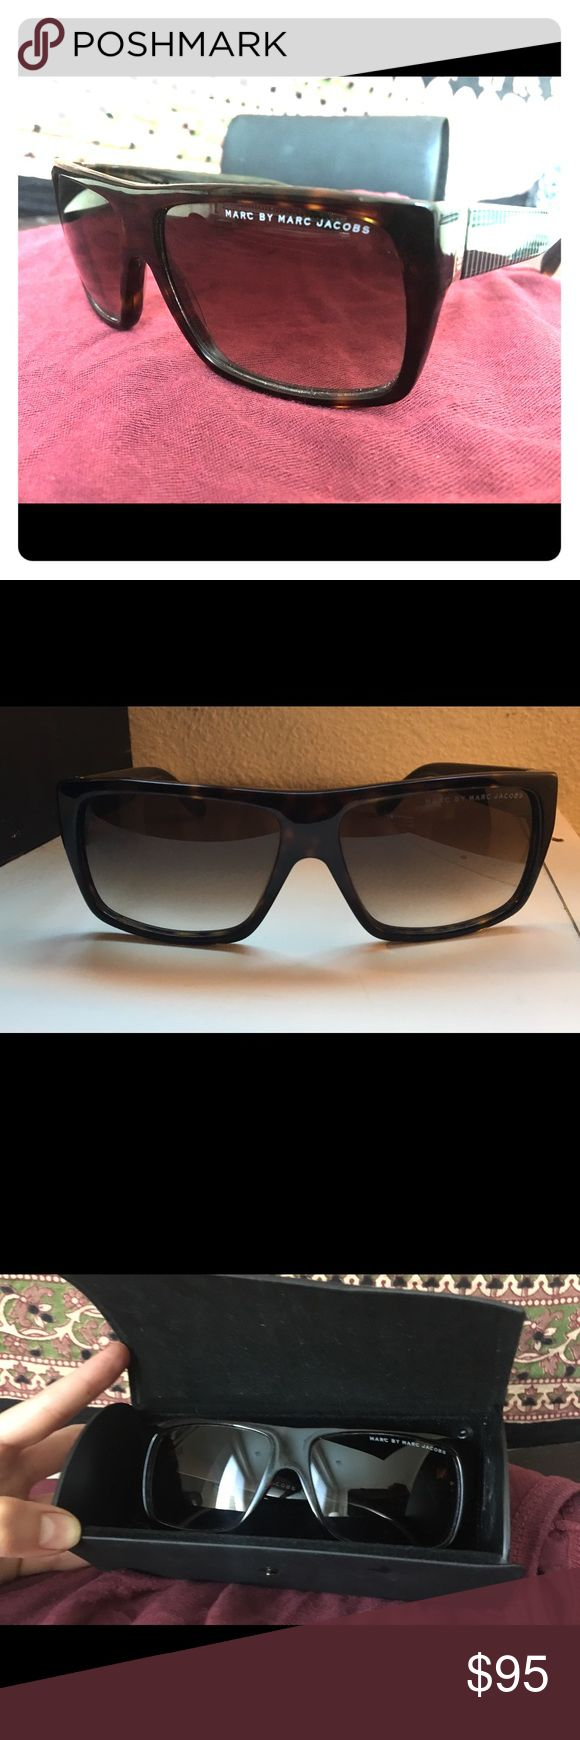 Selling this Marc Jacobs brown sunglasses with gradient lens. on Poshmark! My username is: miranda_0123. #shopmycloset #poshmark #fashion #shopping #style #forsale #Marc Jacobs #Other